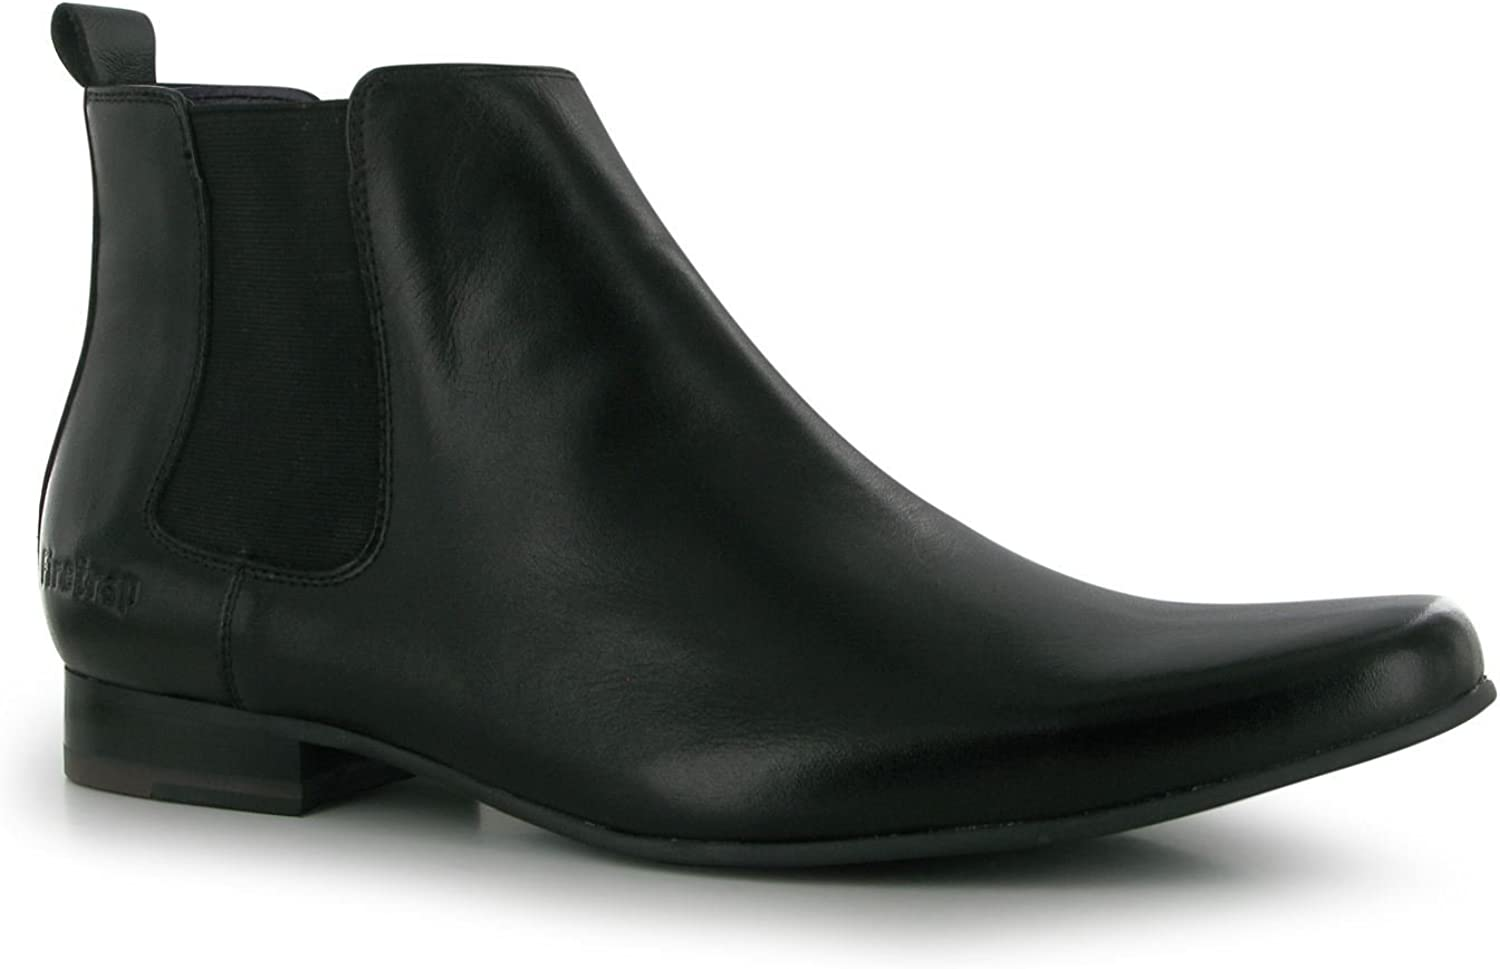 Firetrap Mens Chelsea Boots shoes Footwear Slip On Elasticated Sides